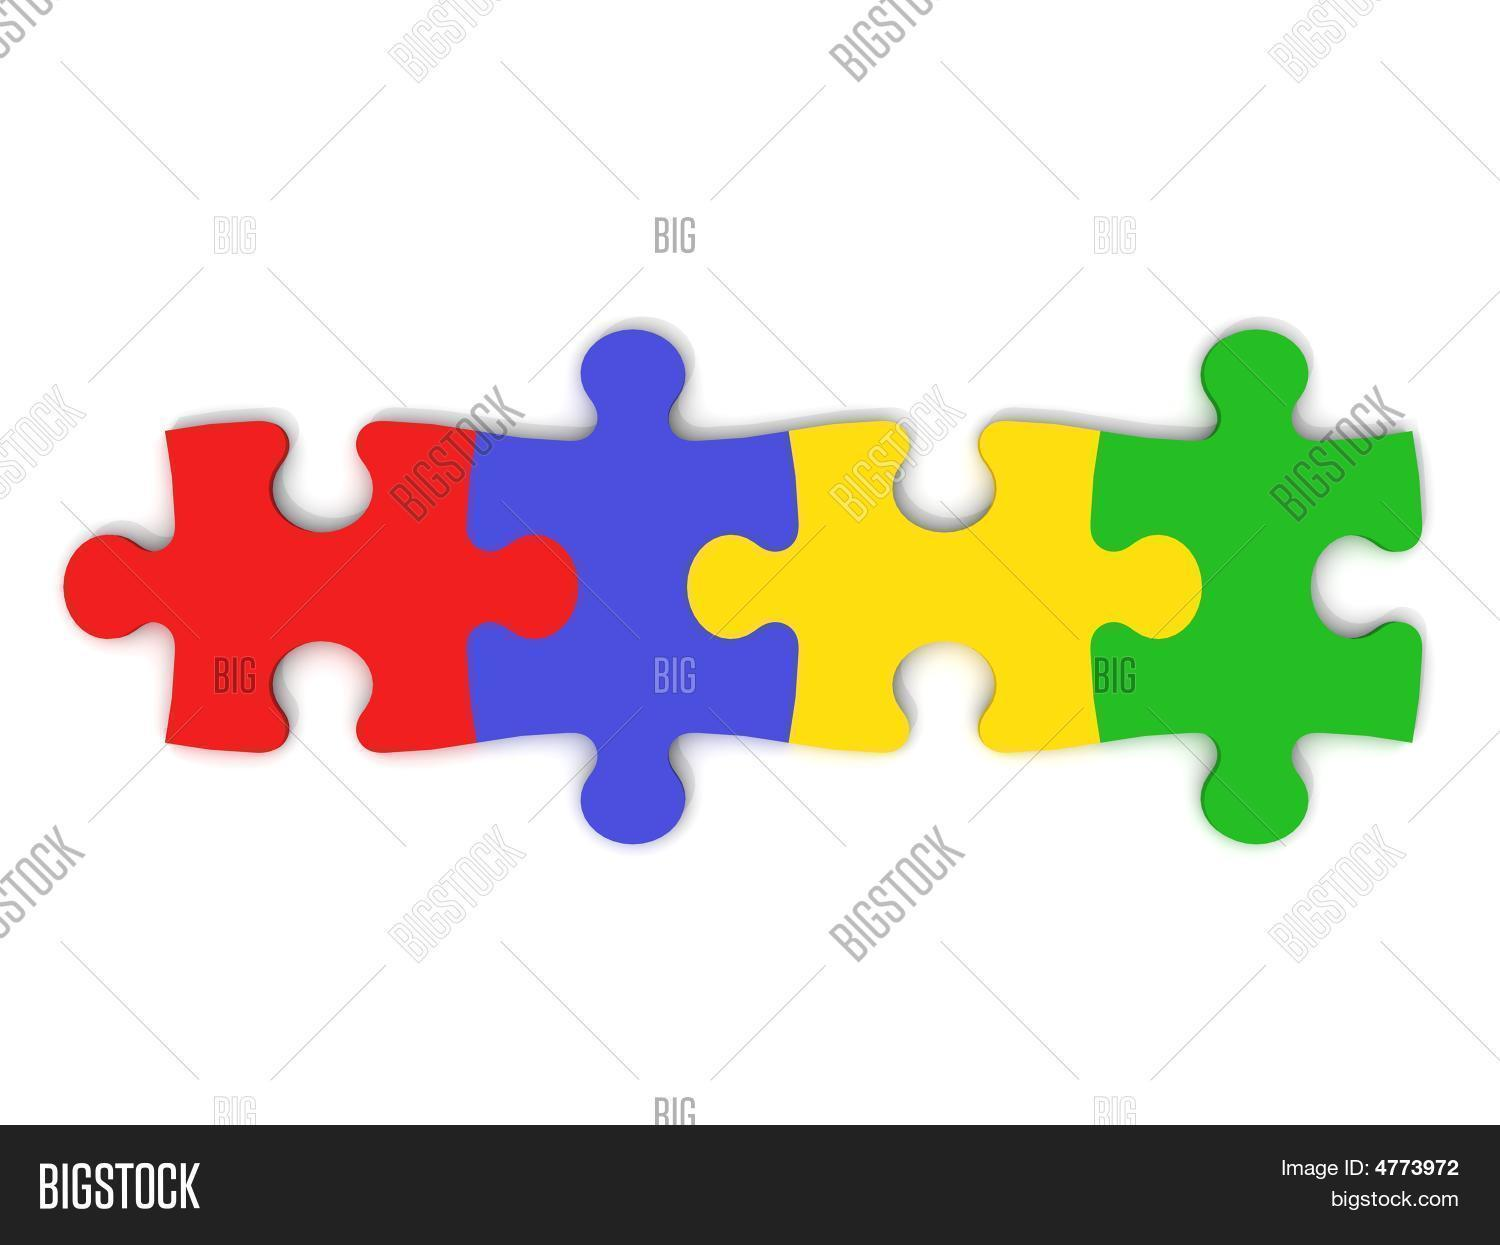 Colorful Puzzle Pieces Image & Photo (Free Trial) | Bigstock